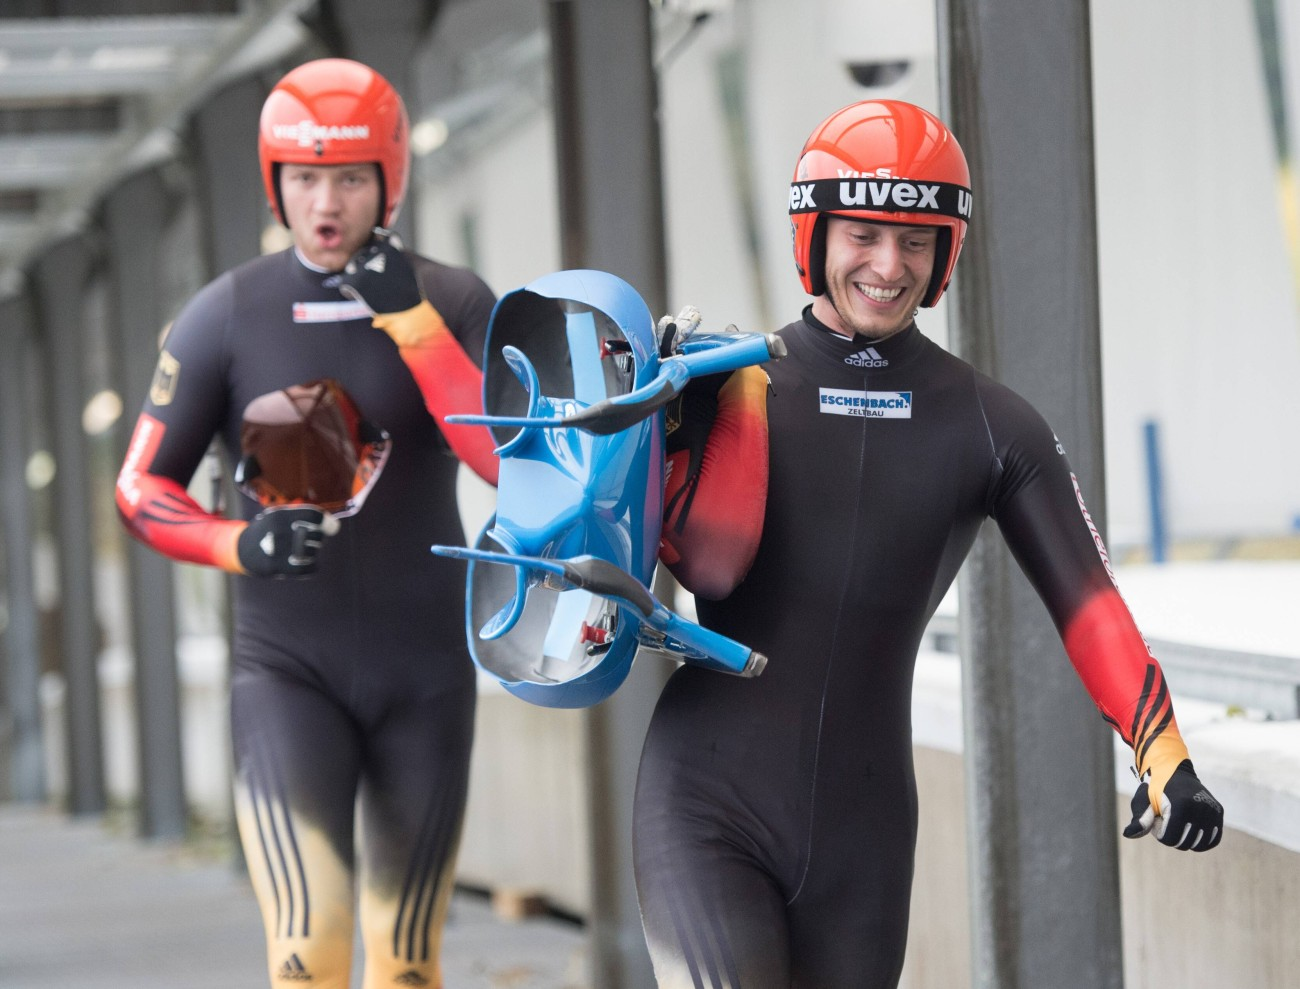 They steer the luge by flexing the runners with their calves or shifting their weight